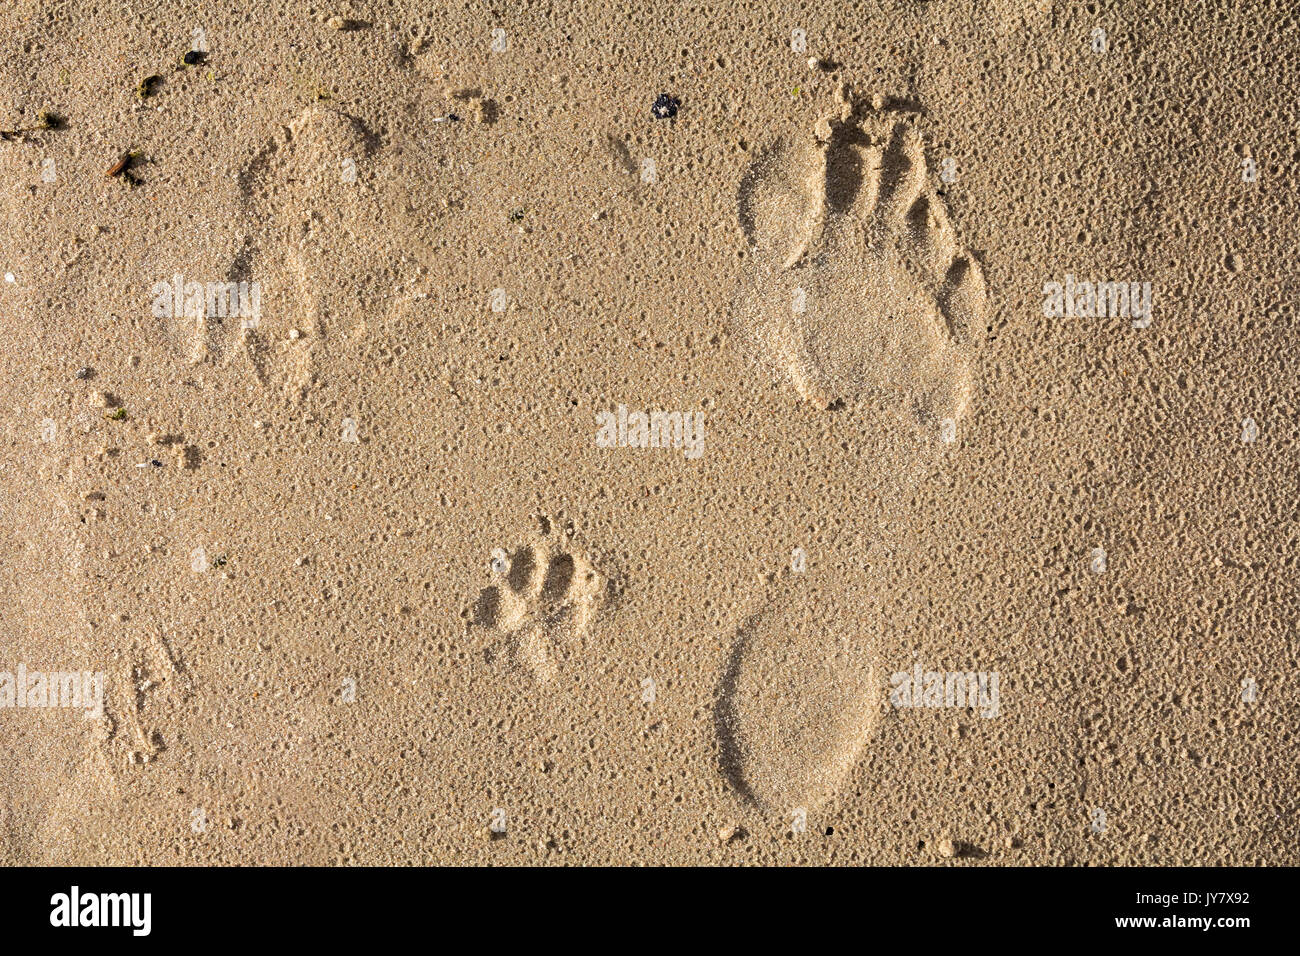 7a6c987f9fba small dog and humans feet prints on a wet sand, abstract background · Juris  Teivans / Alamy Stock Photo